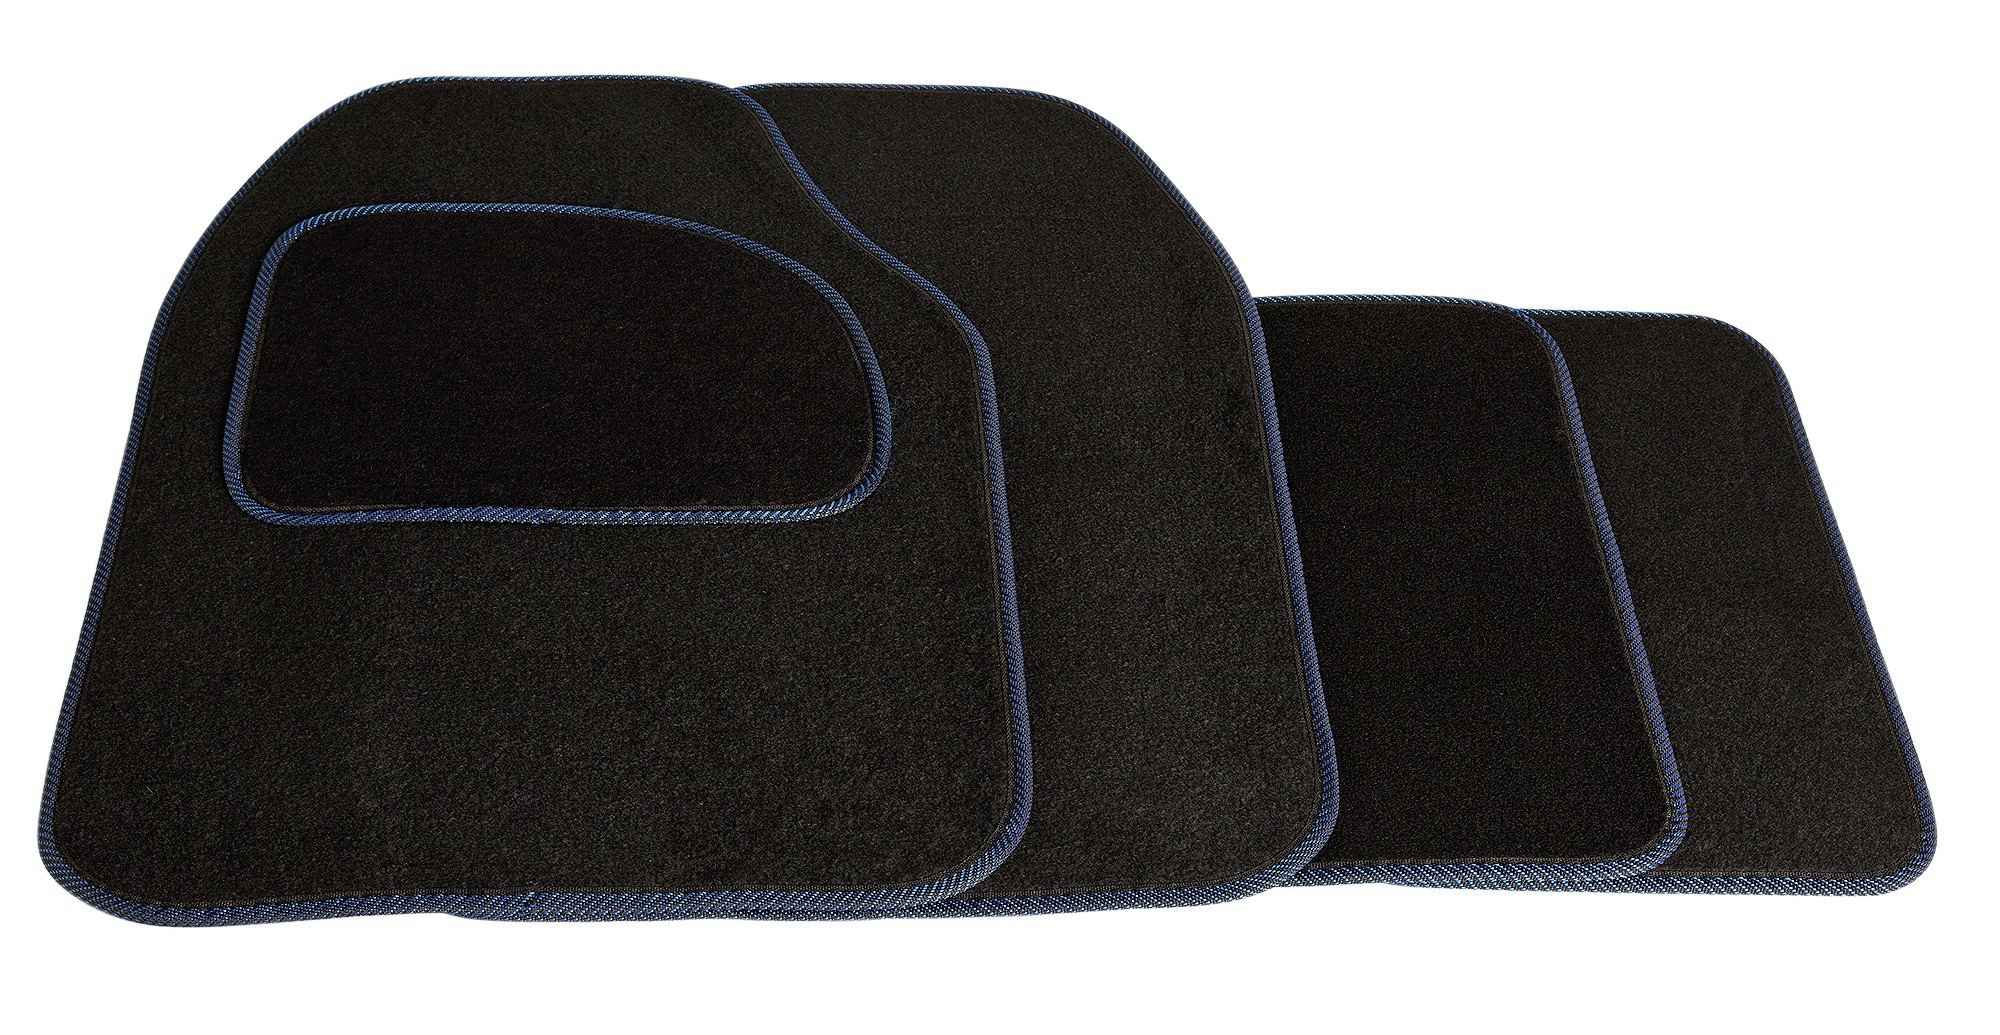 Image of Set of 4 Car Mats - Black with Blue Trim